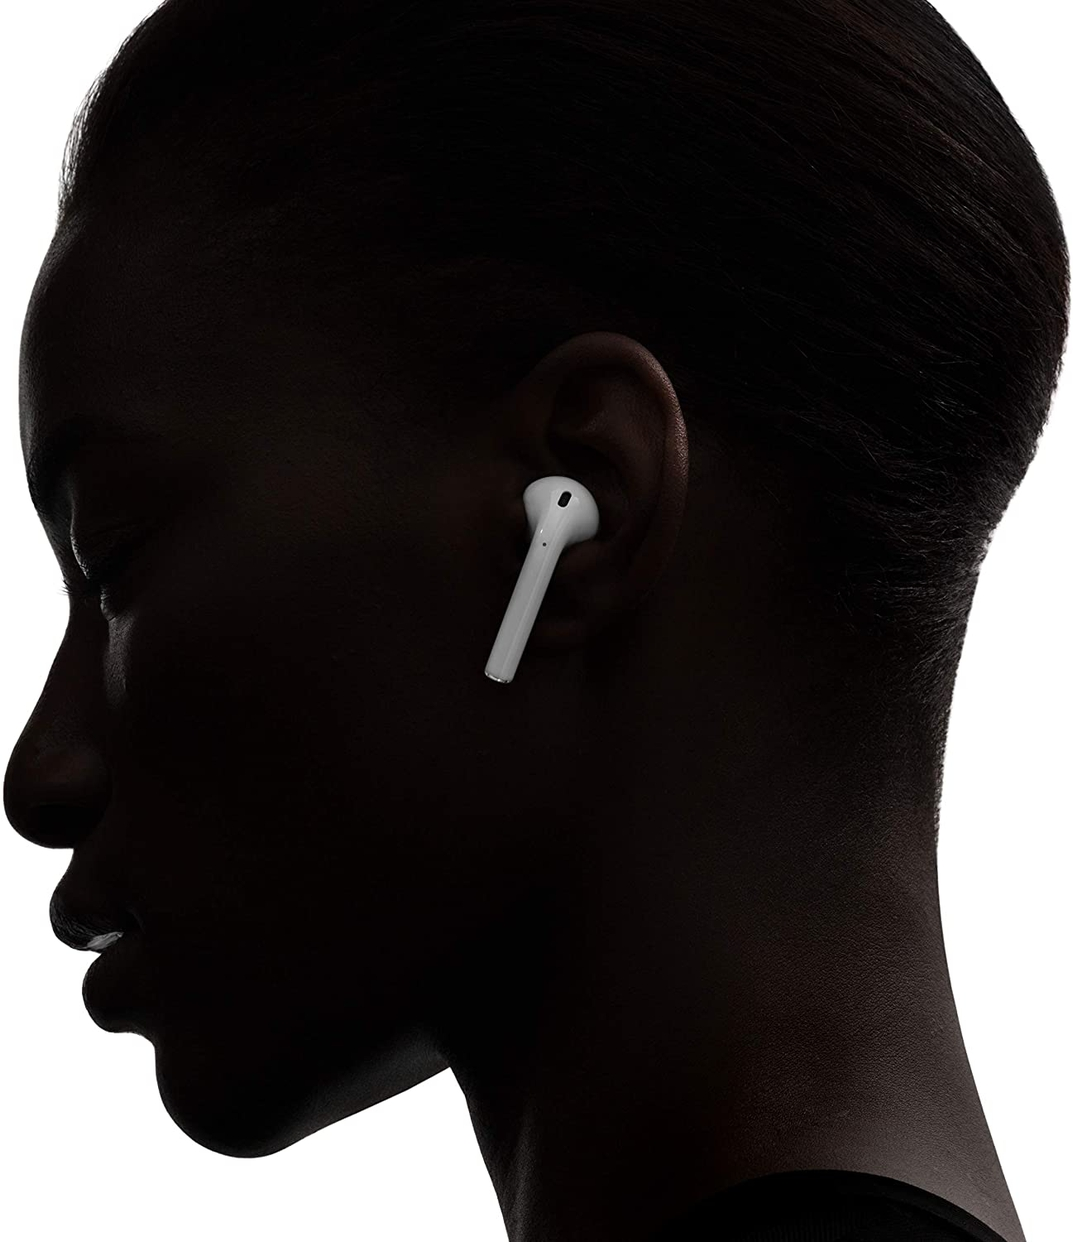 Apple(アップル) AirPods with Charging Caseの商品画像5